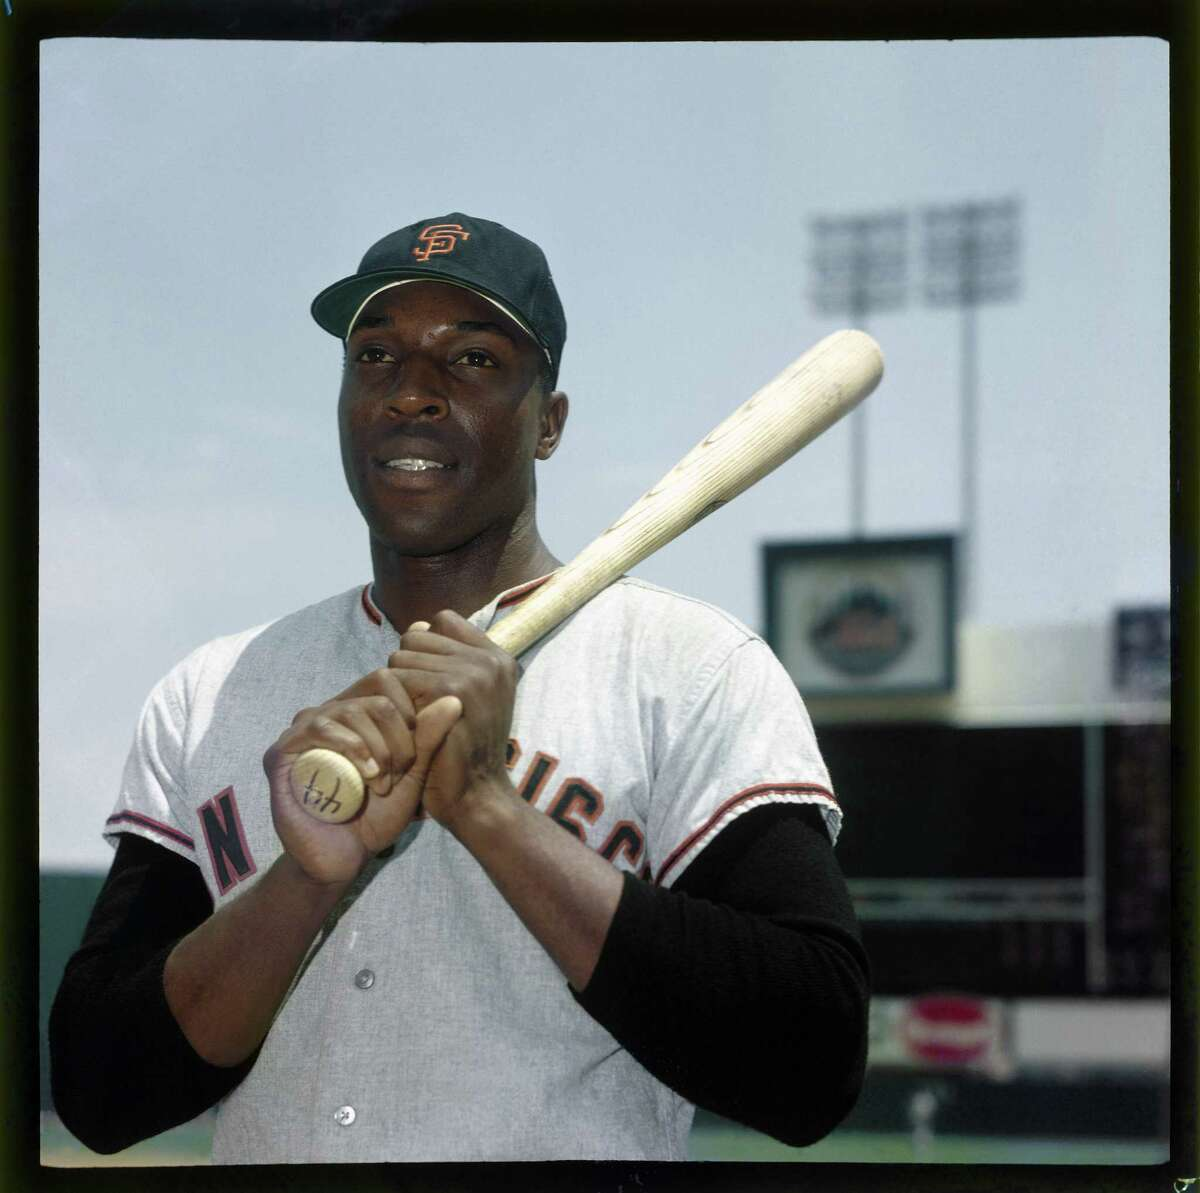 Willie McCovey of the San Francisco Giants poses for a portrait before the game against the New York Mets at Shea Stadium in Queens, New York circa 1964.